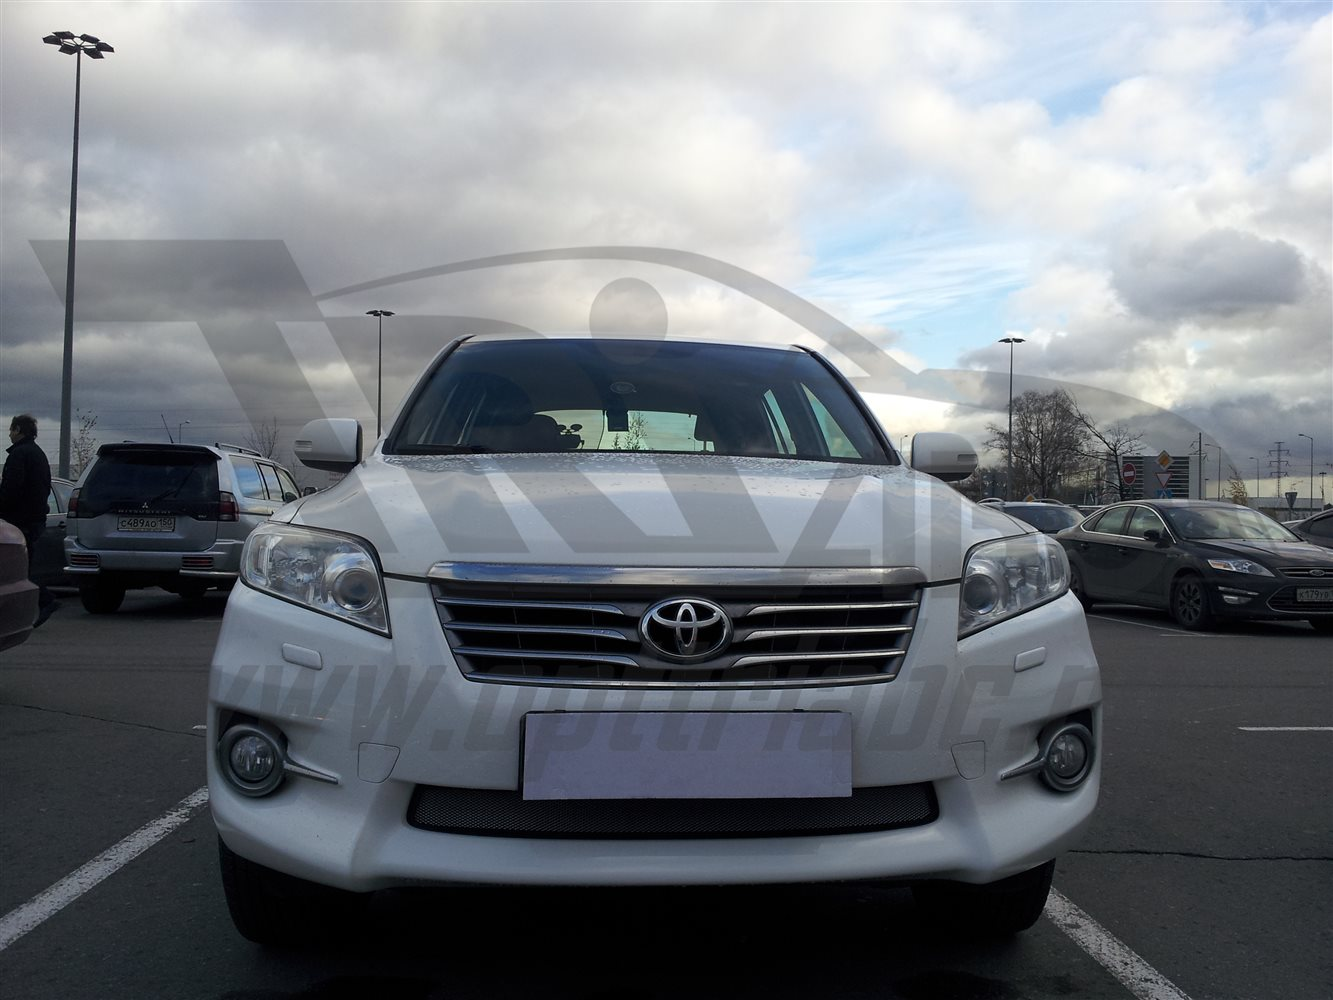 'Защита радиатора Toyota RAV4 2010-2013 (Chrome)'